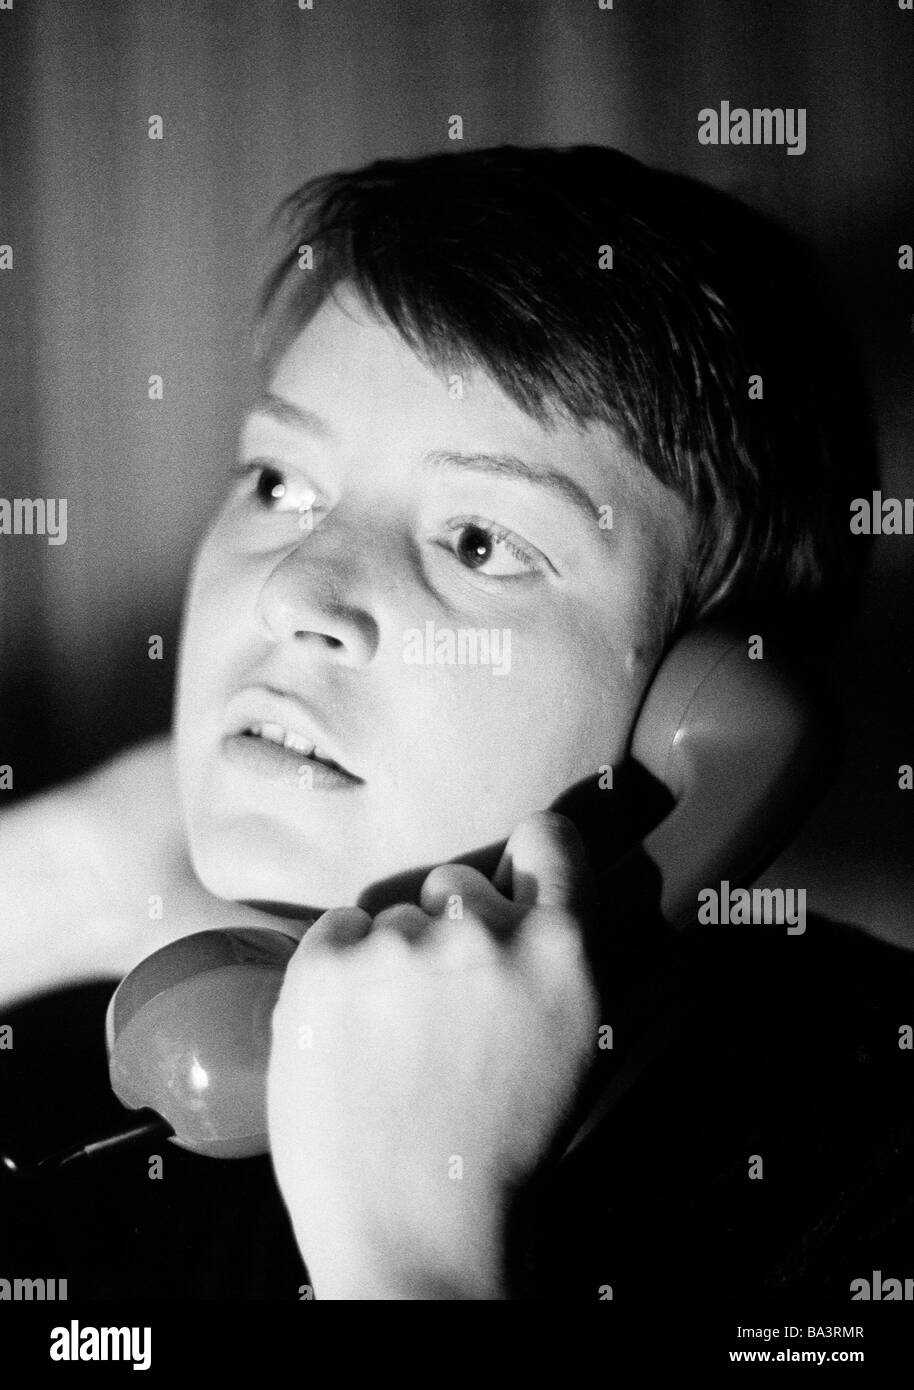 Seventies, black and white photo, people, young girl, portrait, aged 20 to 25 years, telephone, earphone, Monika - Stock Image